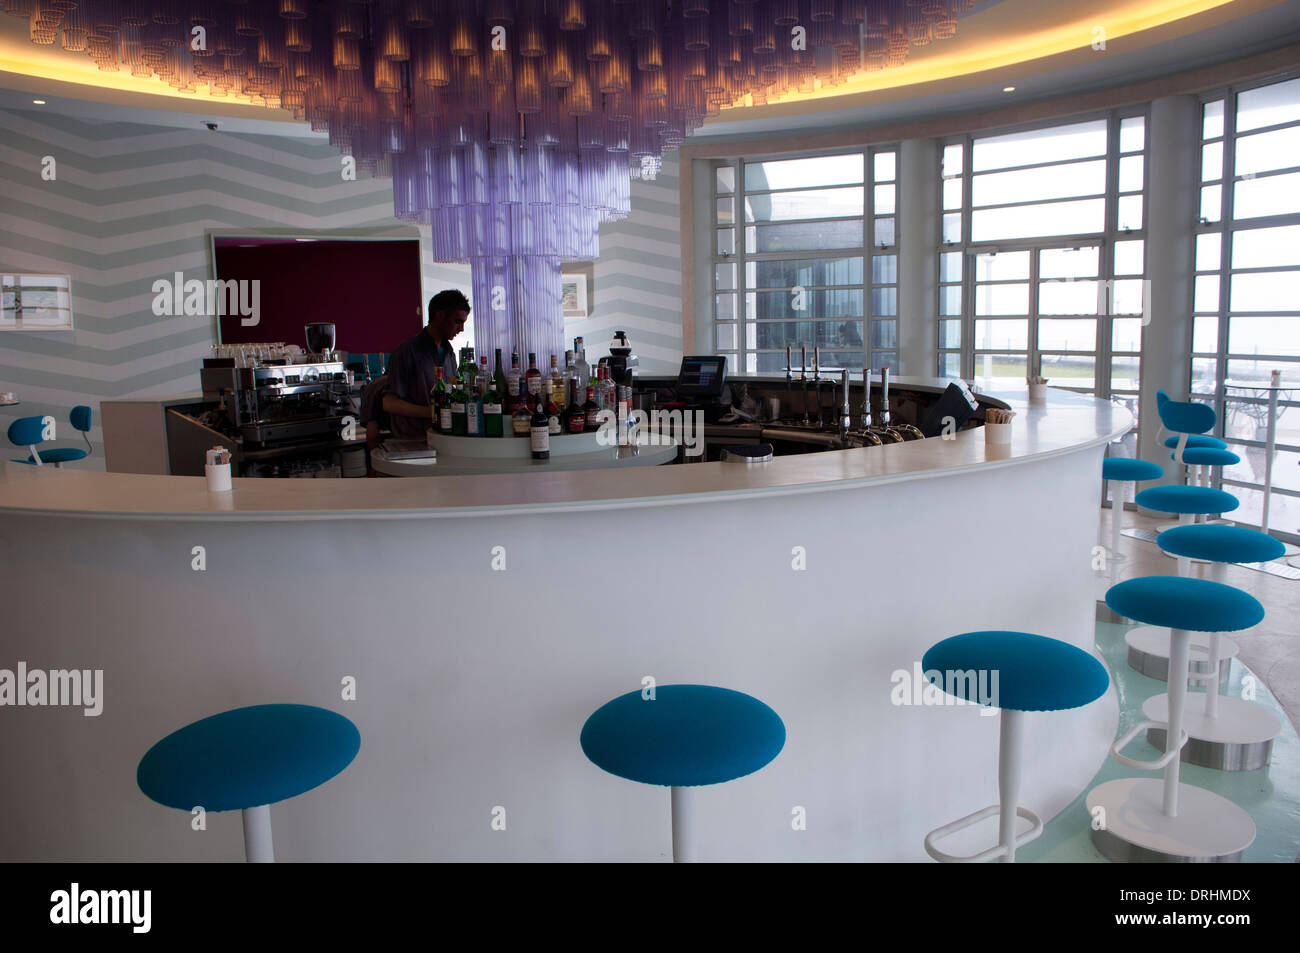 A bar at the midland hotel is a streamline modern art deco